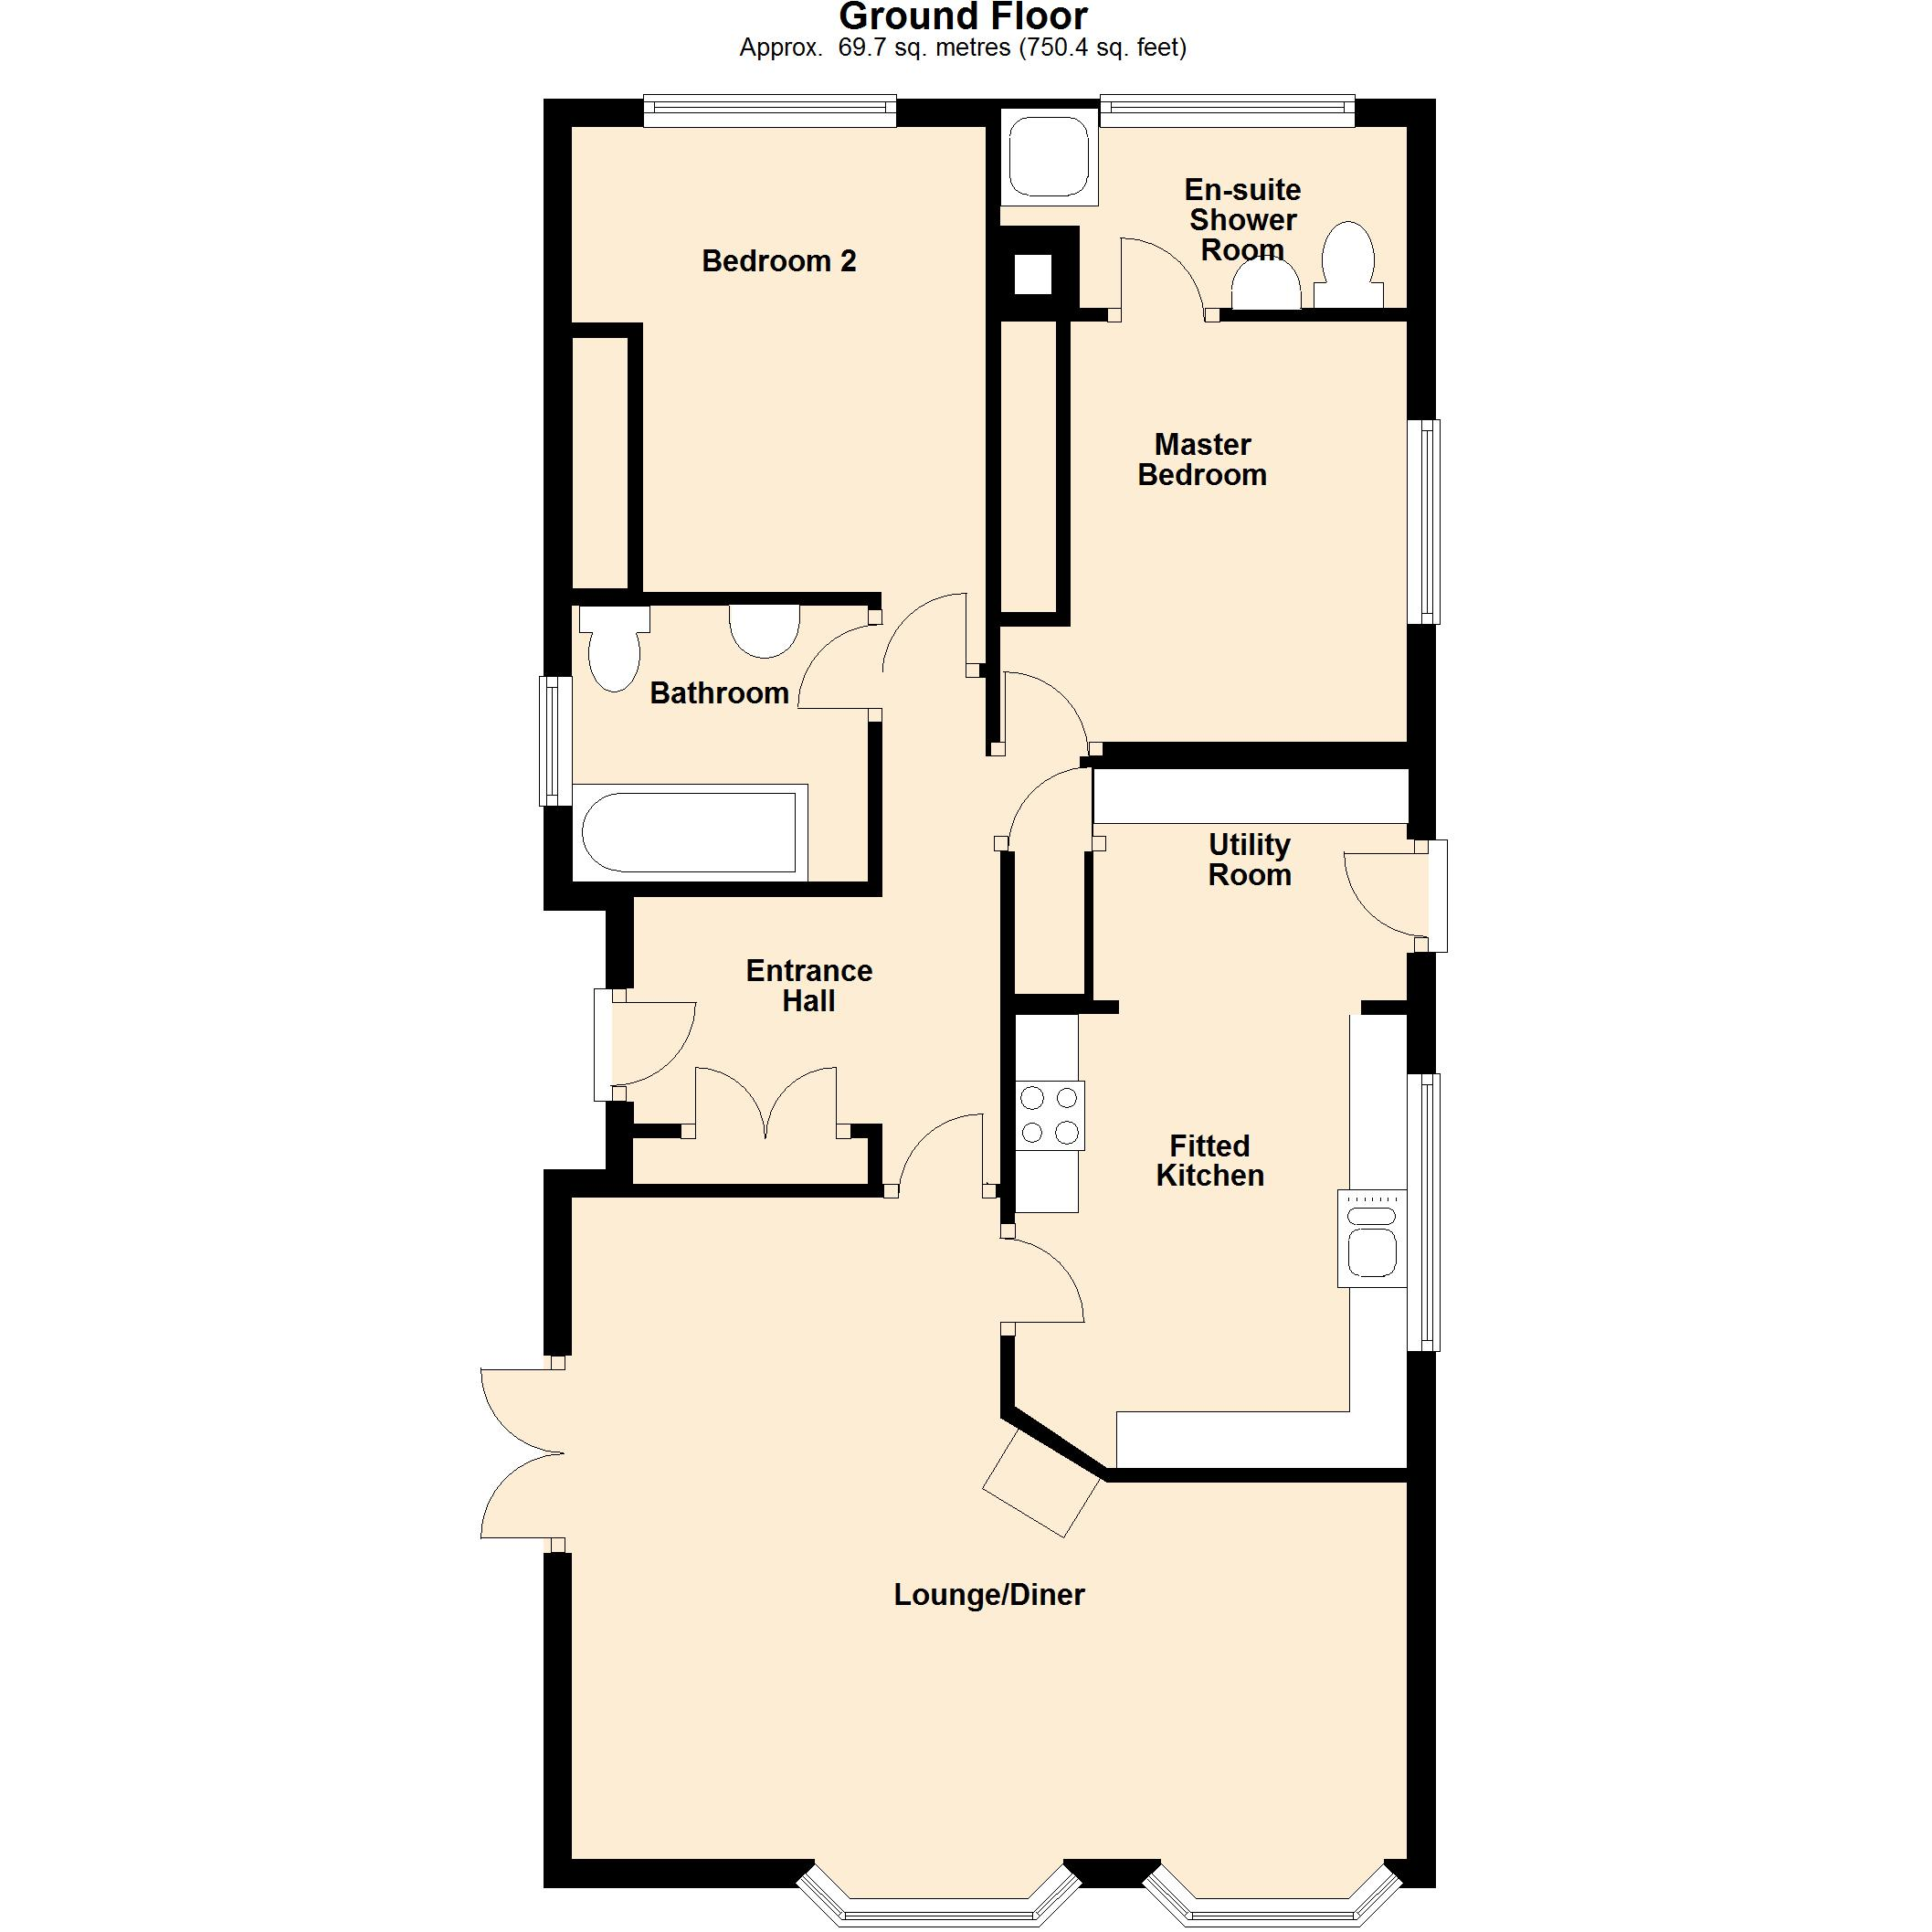 40x20 house plans house design plans - Home design and plans ...